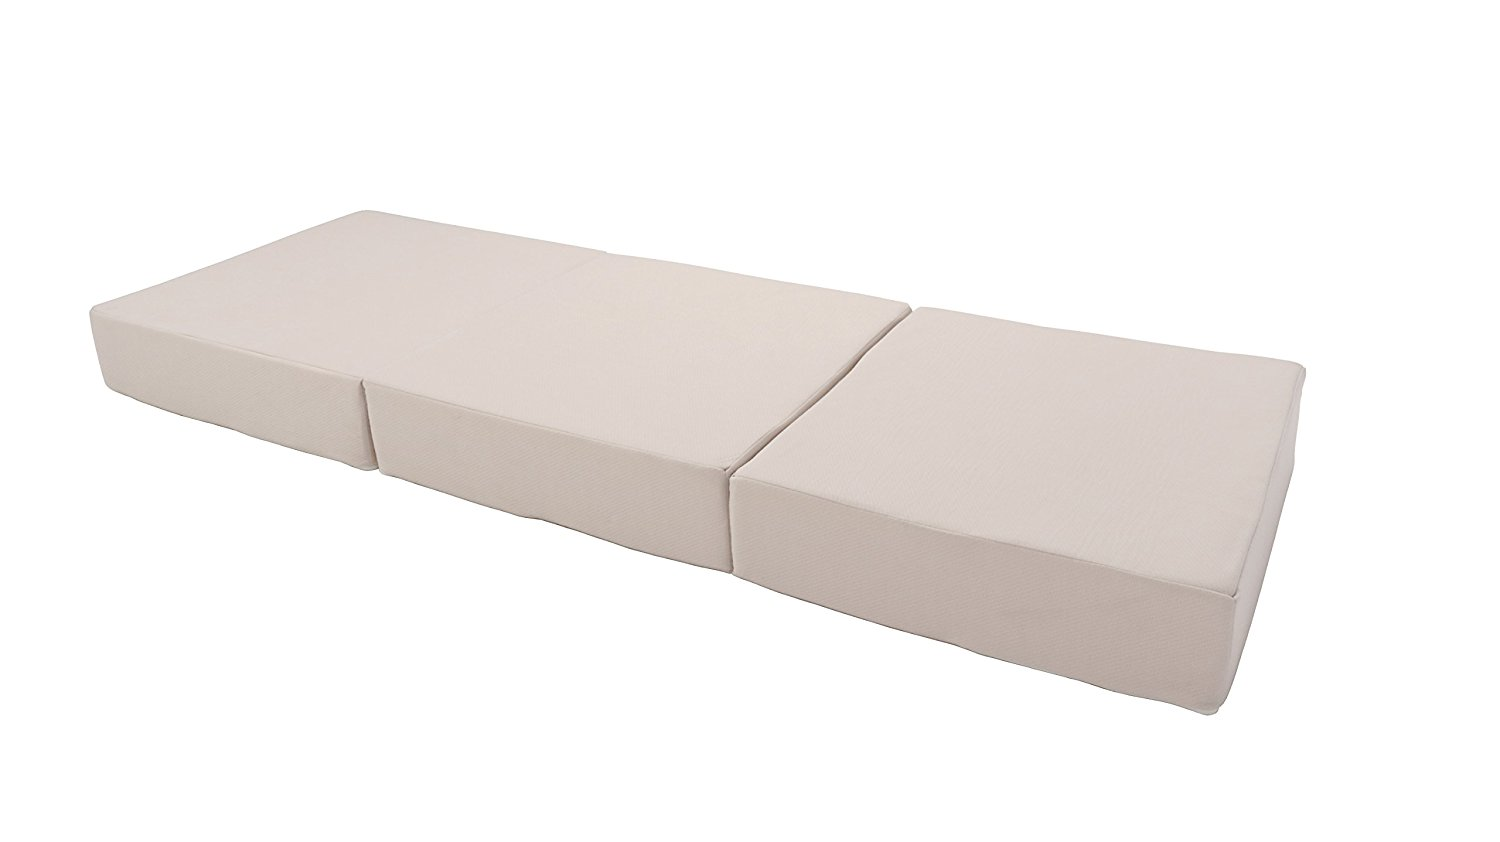 Innovex FM427FPB Fold N Go Tri-Fold Memory Foam 4 inch folding mattress with removable cover and carry bag (75x27x4)